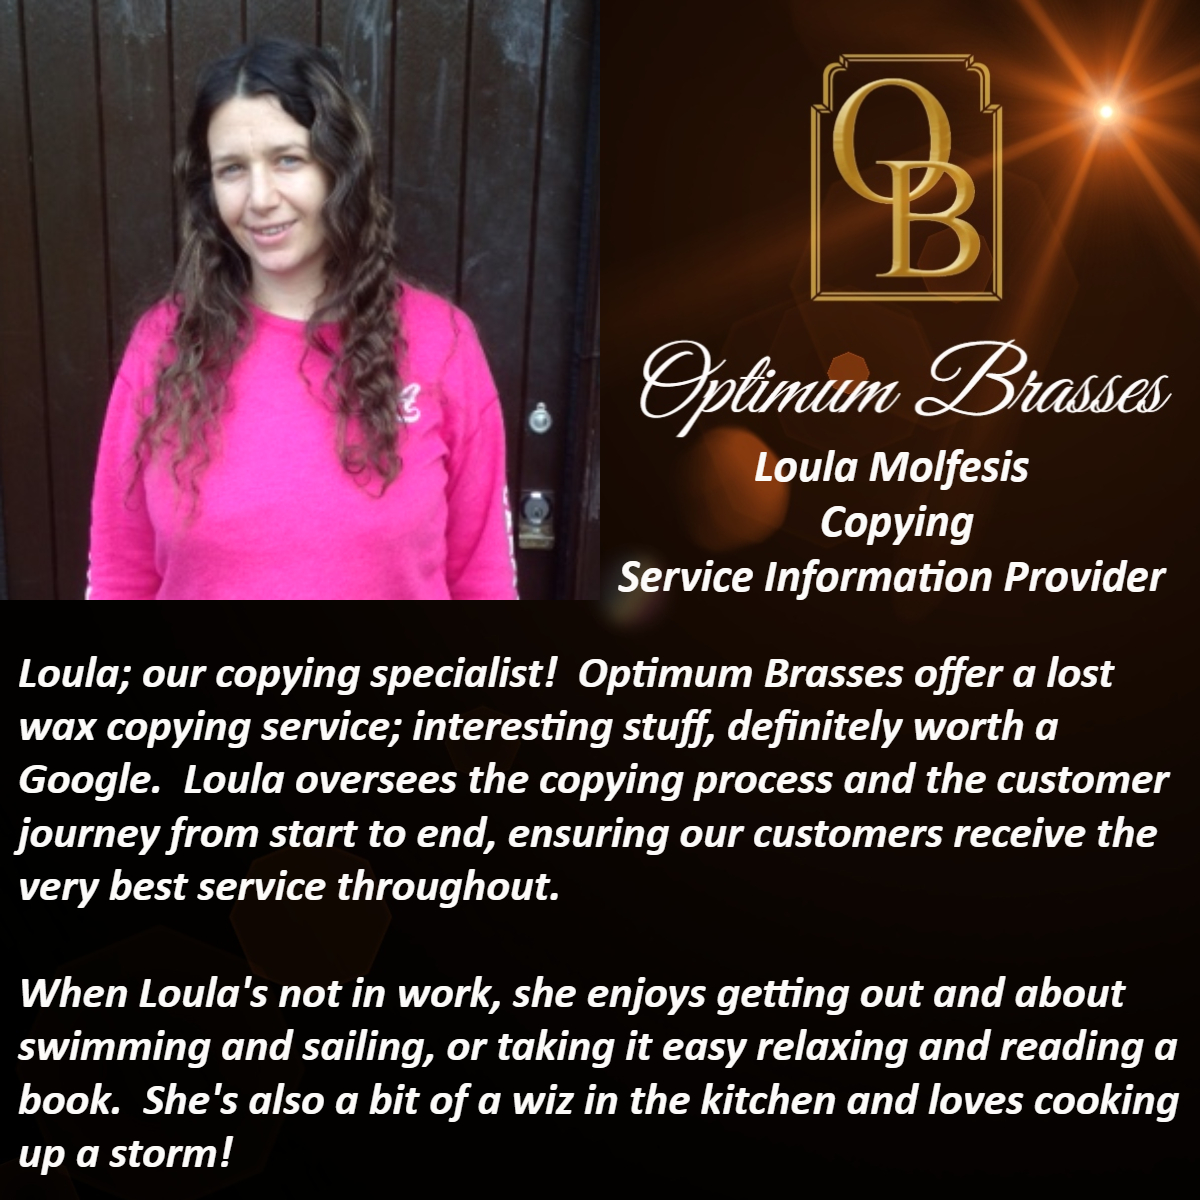 Loula; our copying specialist!  Optimum Brasses offer a lost wax copying service; interesting stuff, definitely worth a Google.  Loula oversees the copying process and the customer journey from start to end, ensuring our customers receive the very best service throughout.  When Loula's not in work, she enjoys getting out and about swimming and sailing, or taking it easy relaxing and reading a book.  She's also a bit of a wiz in the kitchen and loves cooking up a storm!